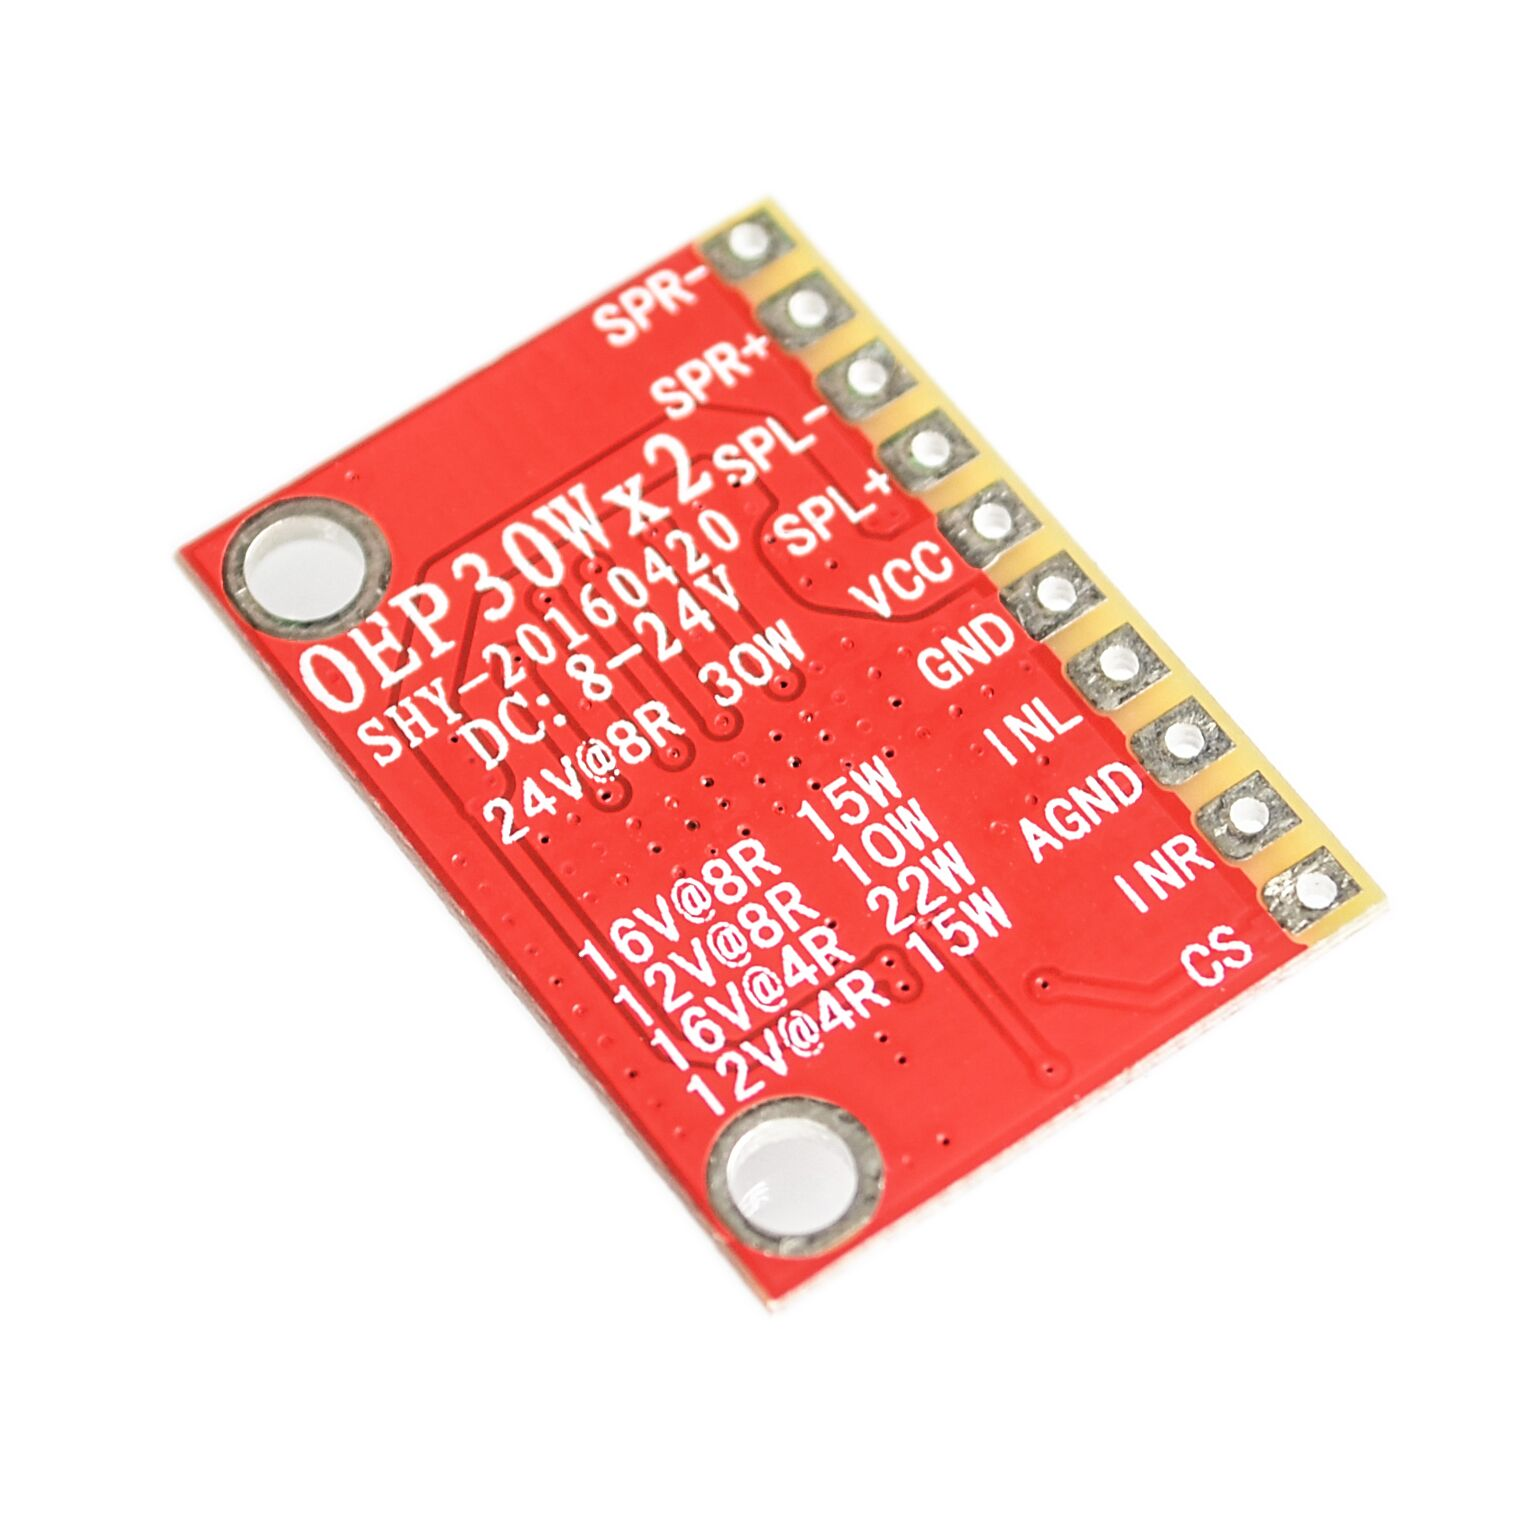 Oep30w2 Double Channel Digital Amplifier Board Module Diy 22w For 12v Power Supply Systems Aeproductgetsubject